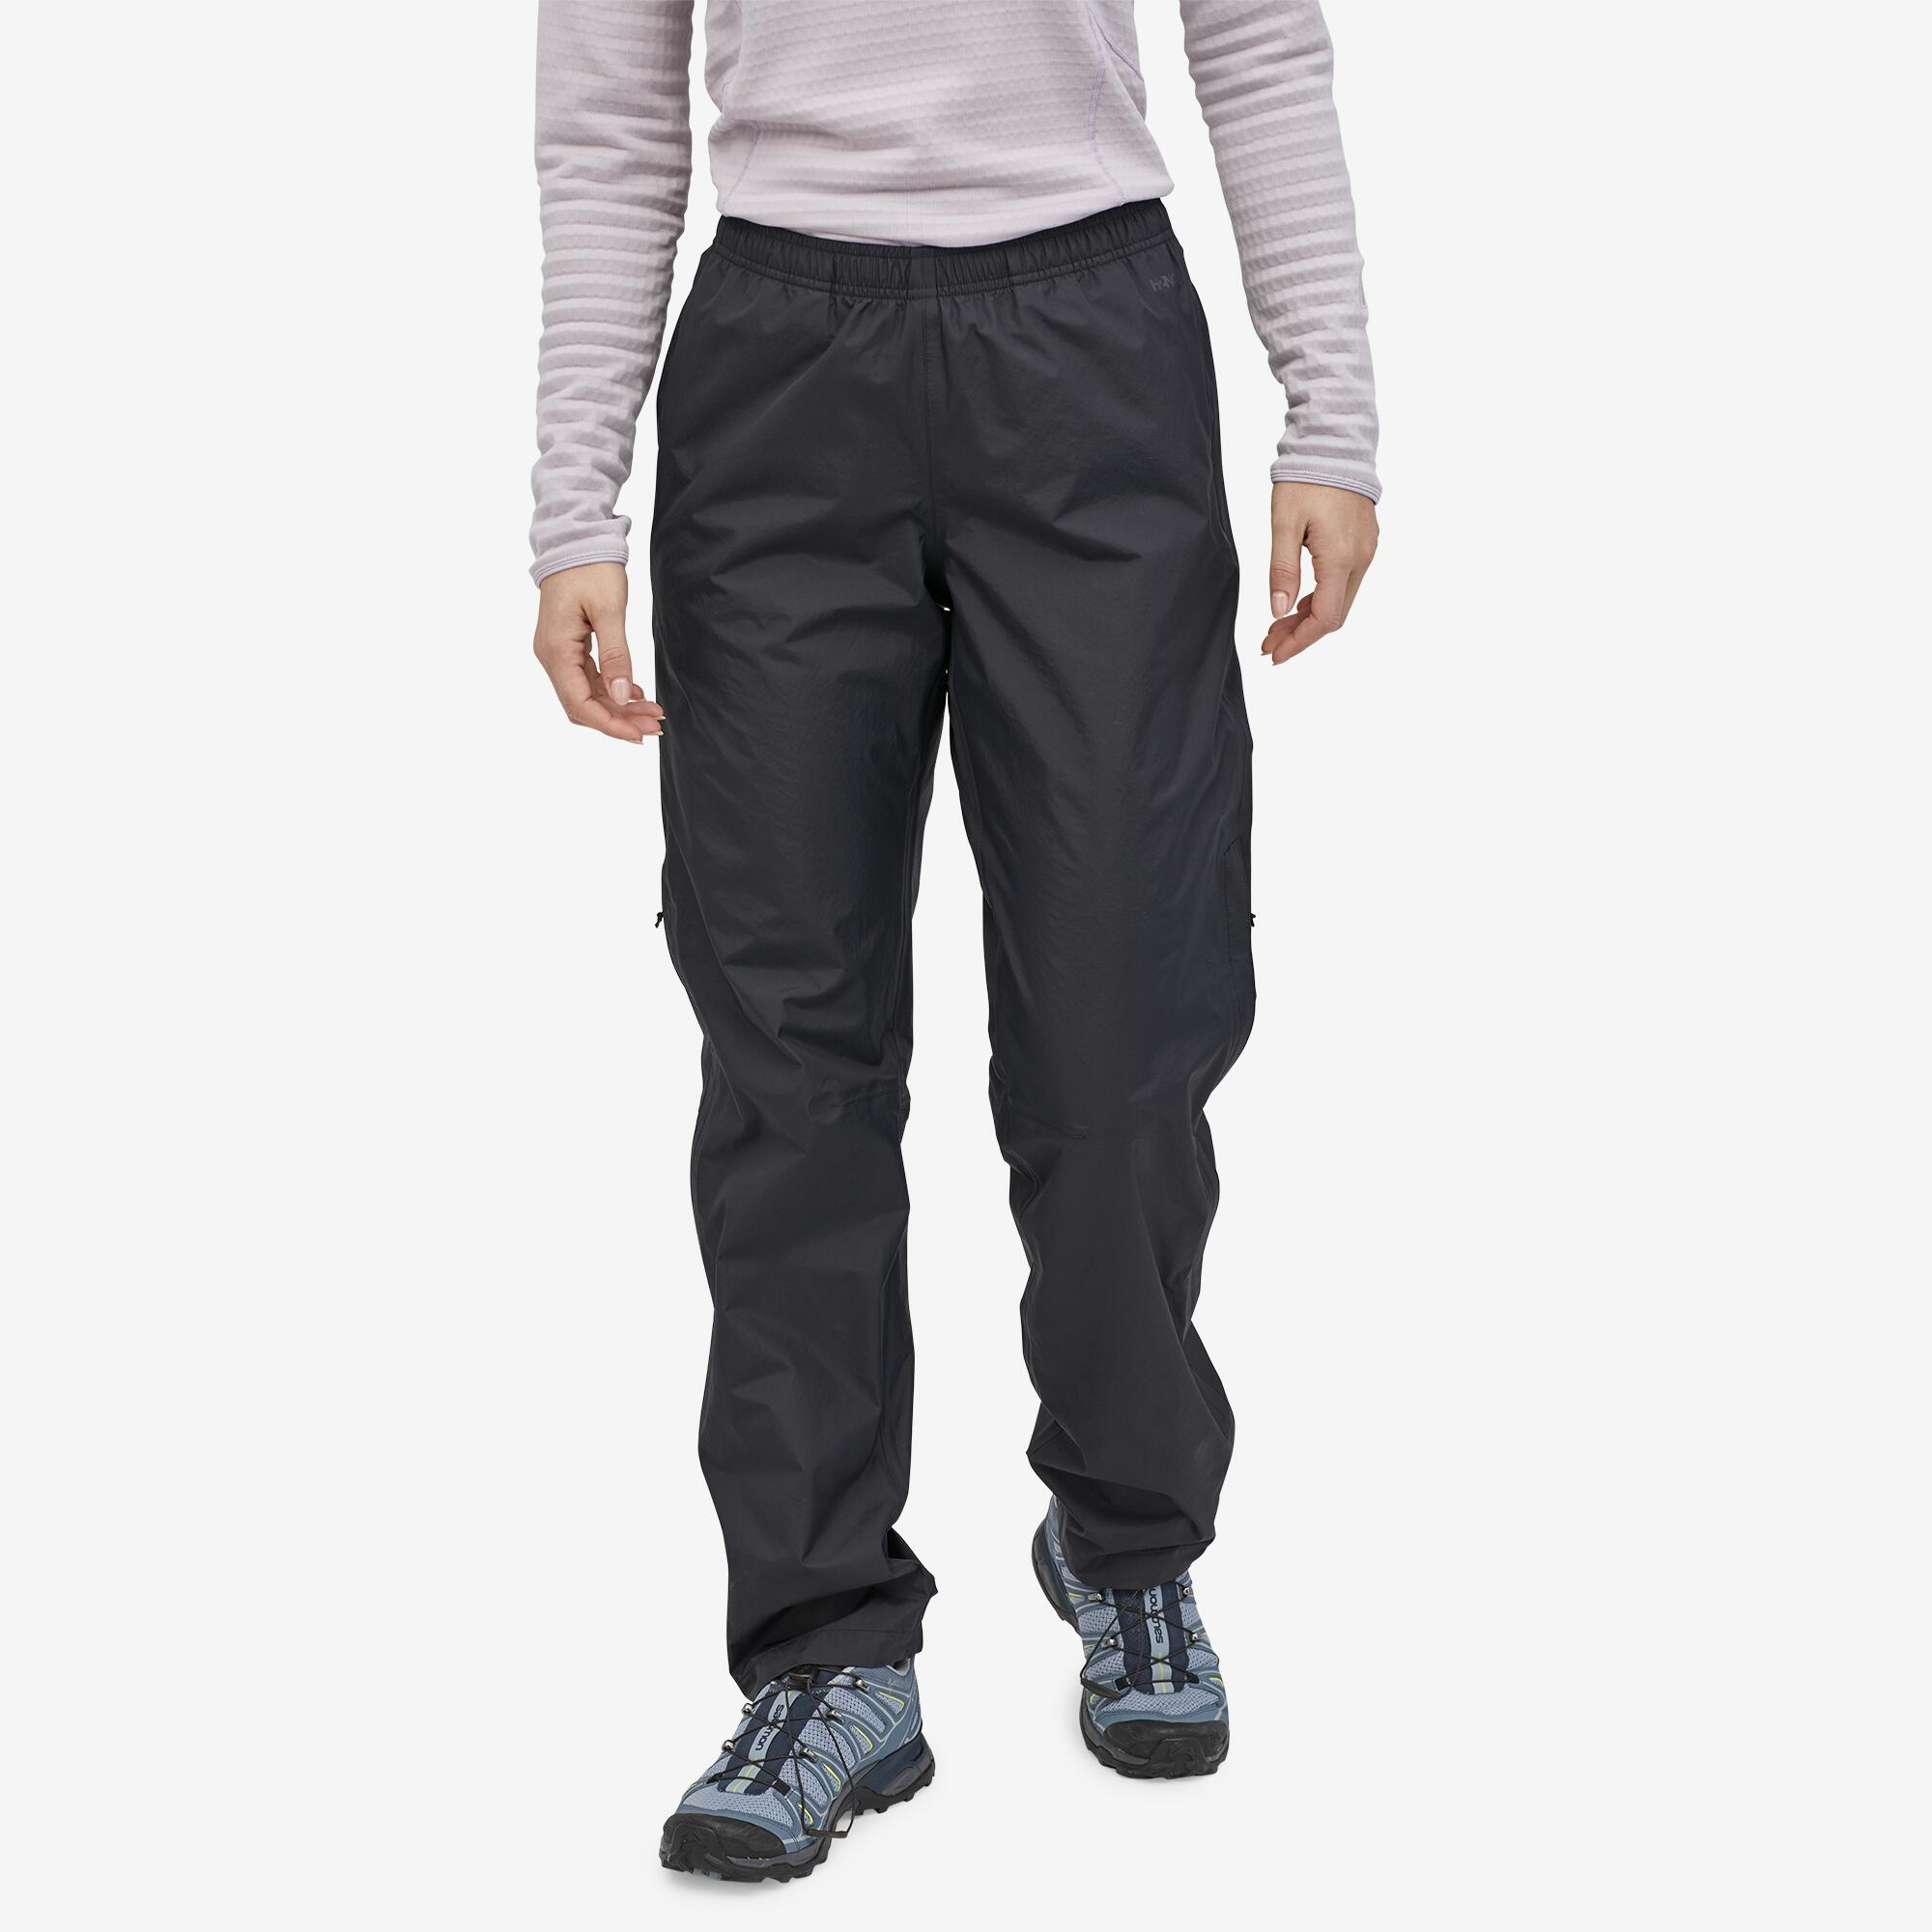 Patagonia - W's Torrentshell 3L Pants - 100% Recycled Nylon - Weekendbee - sustainable sportswear